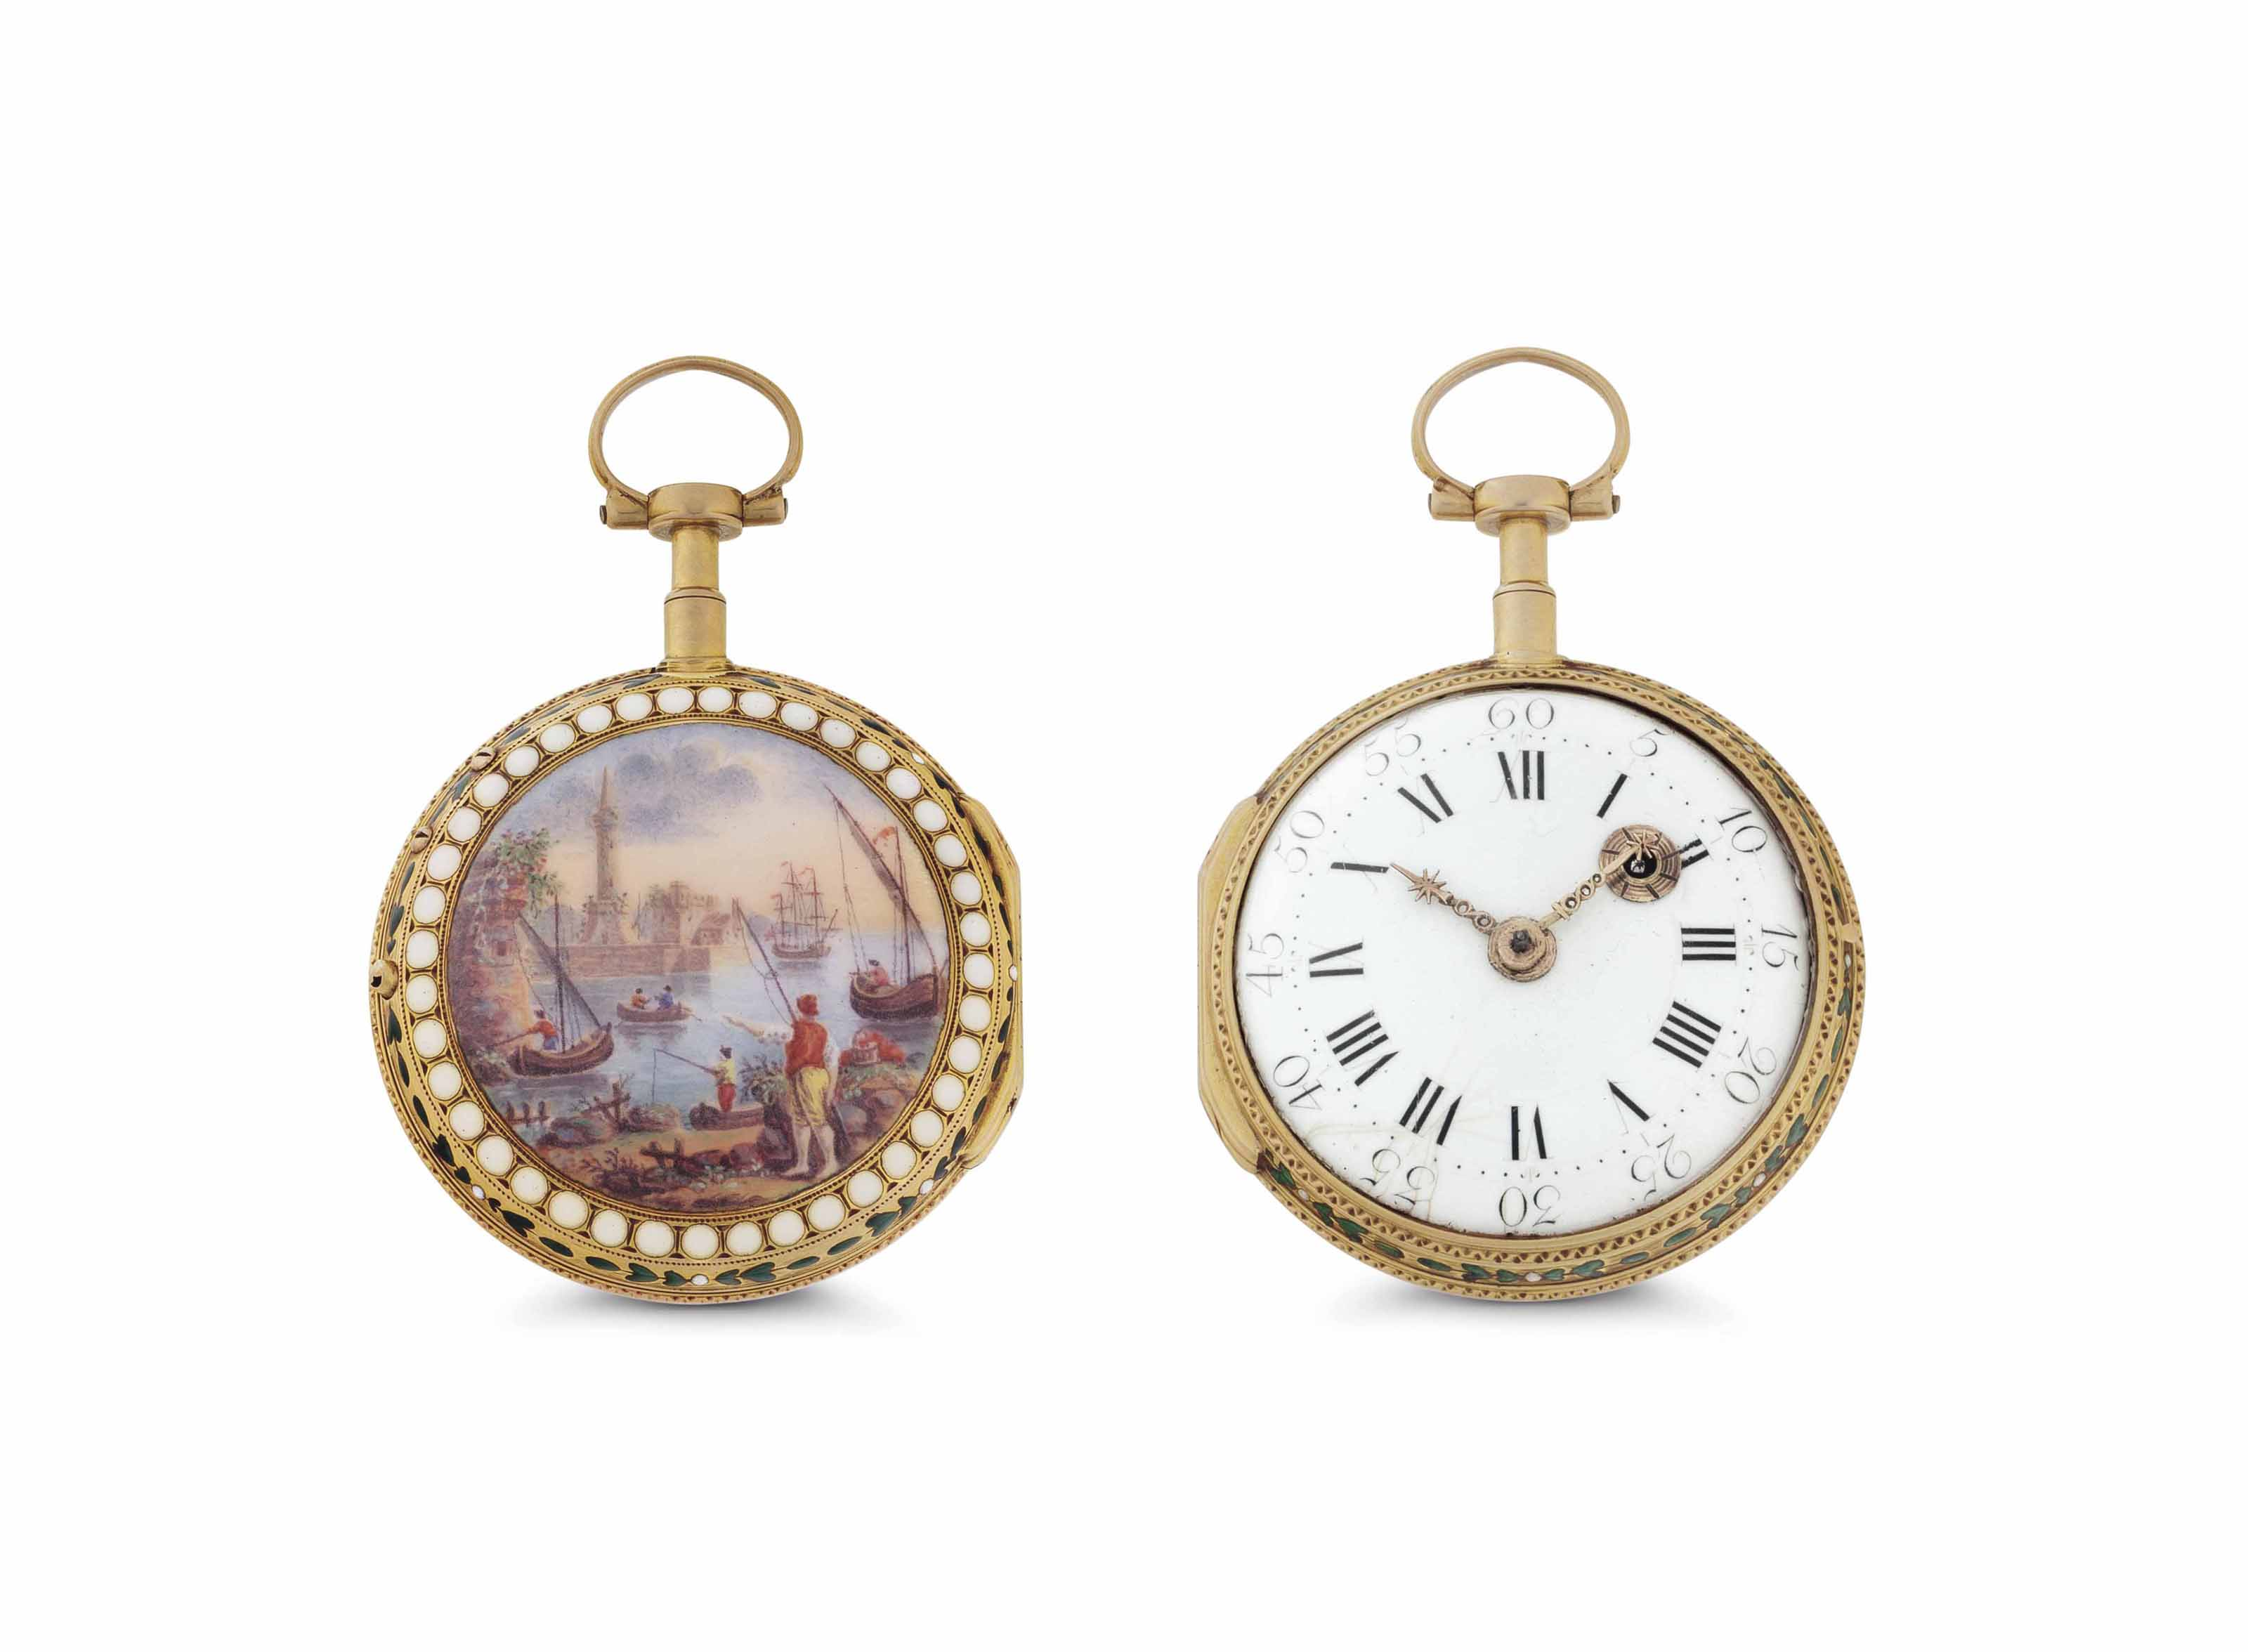 Marchand & Fils. An 18k Gold and Enamel Open Face Keywound Verge Watch